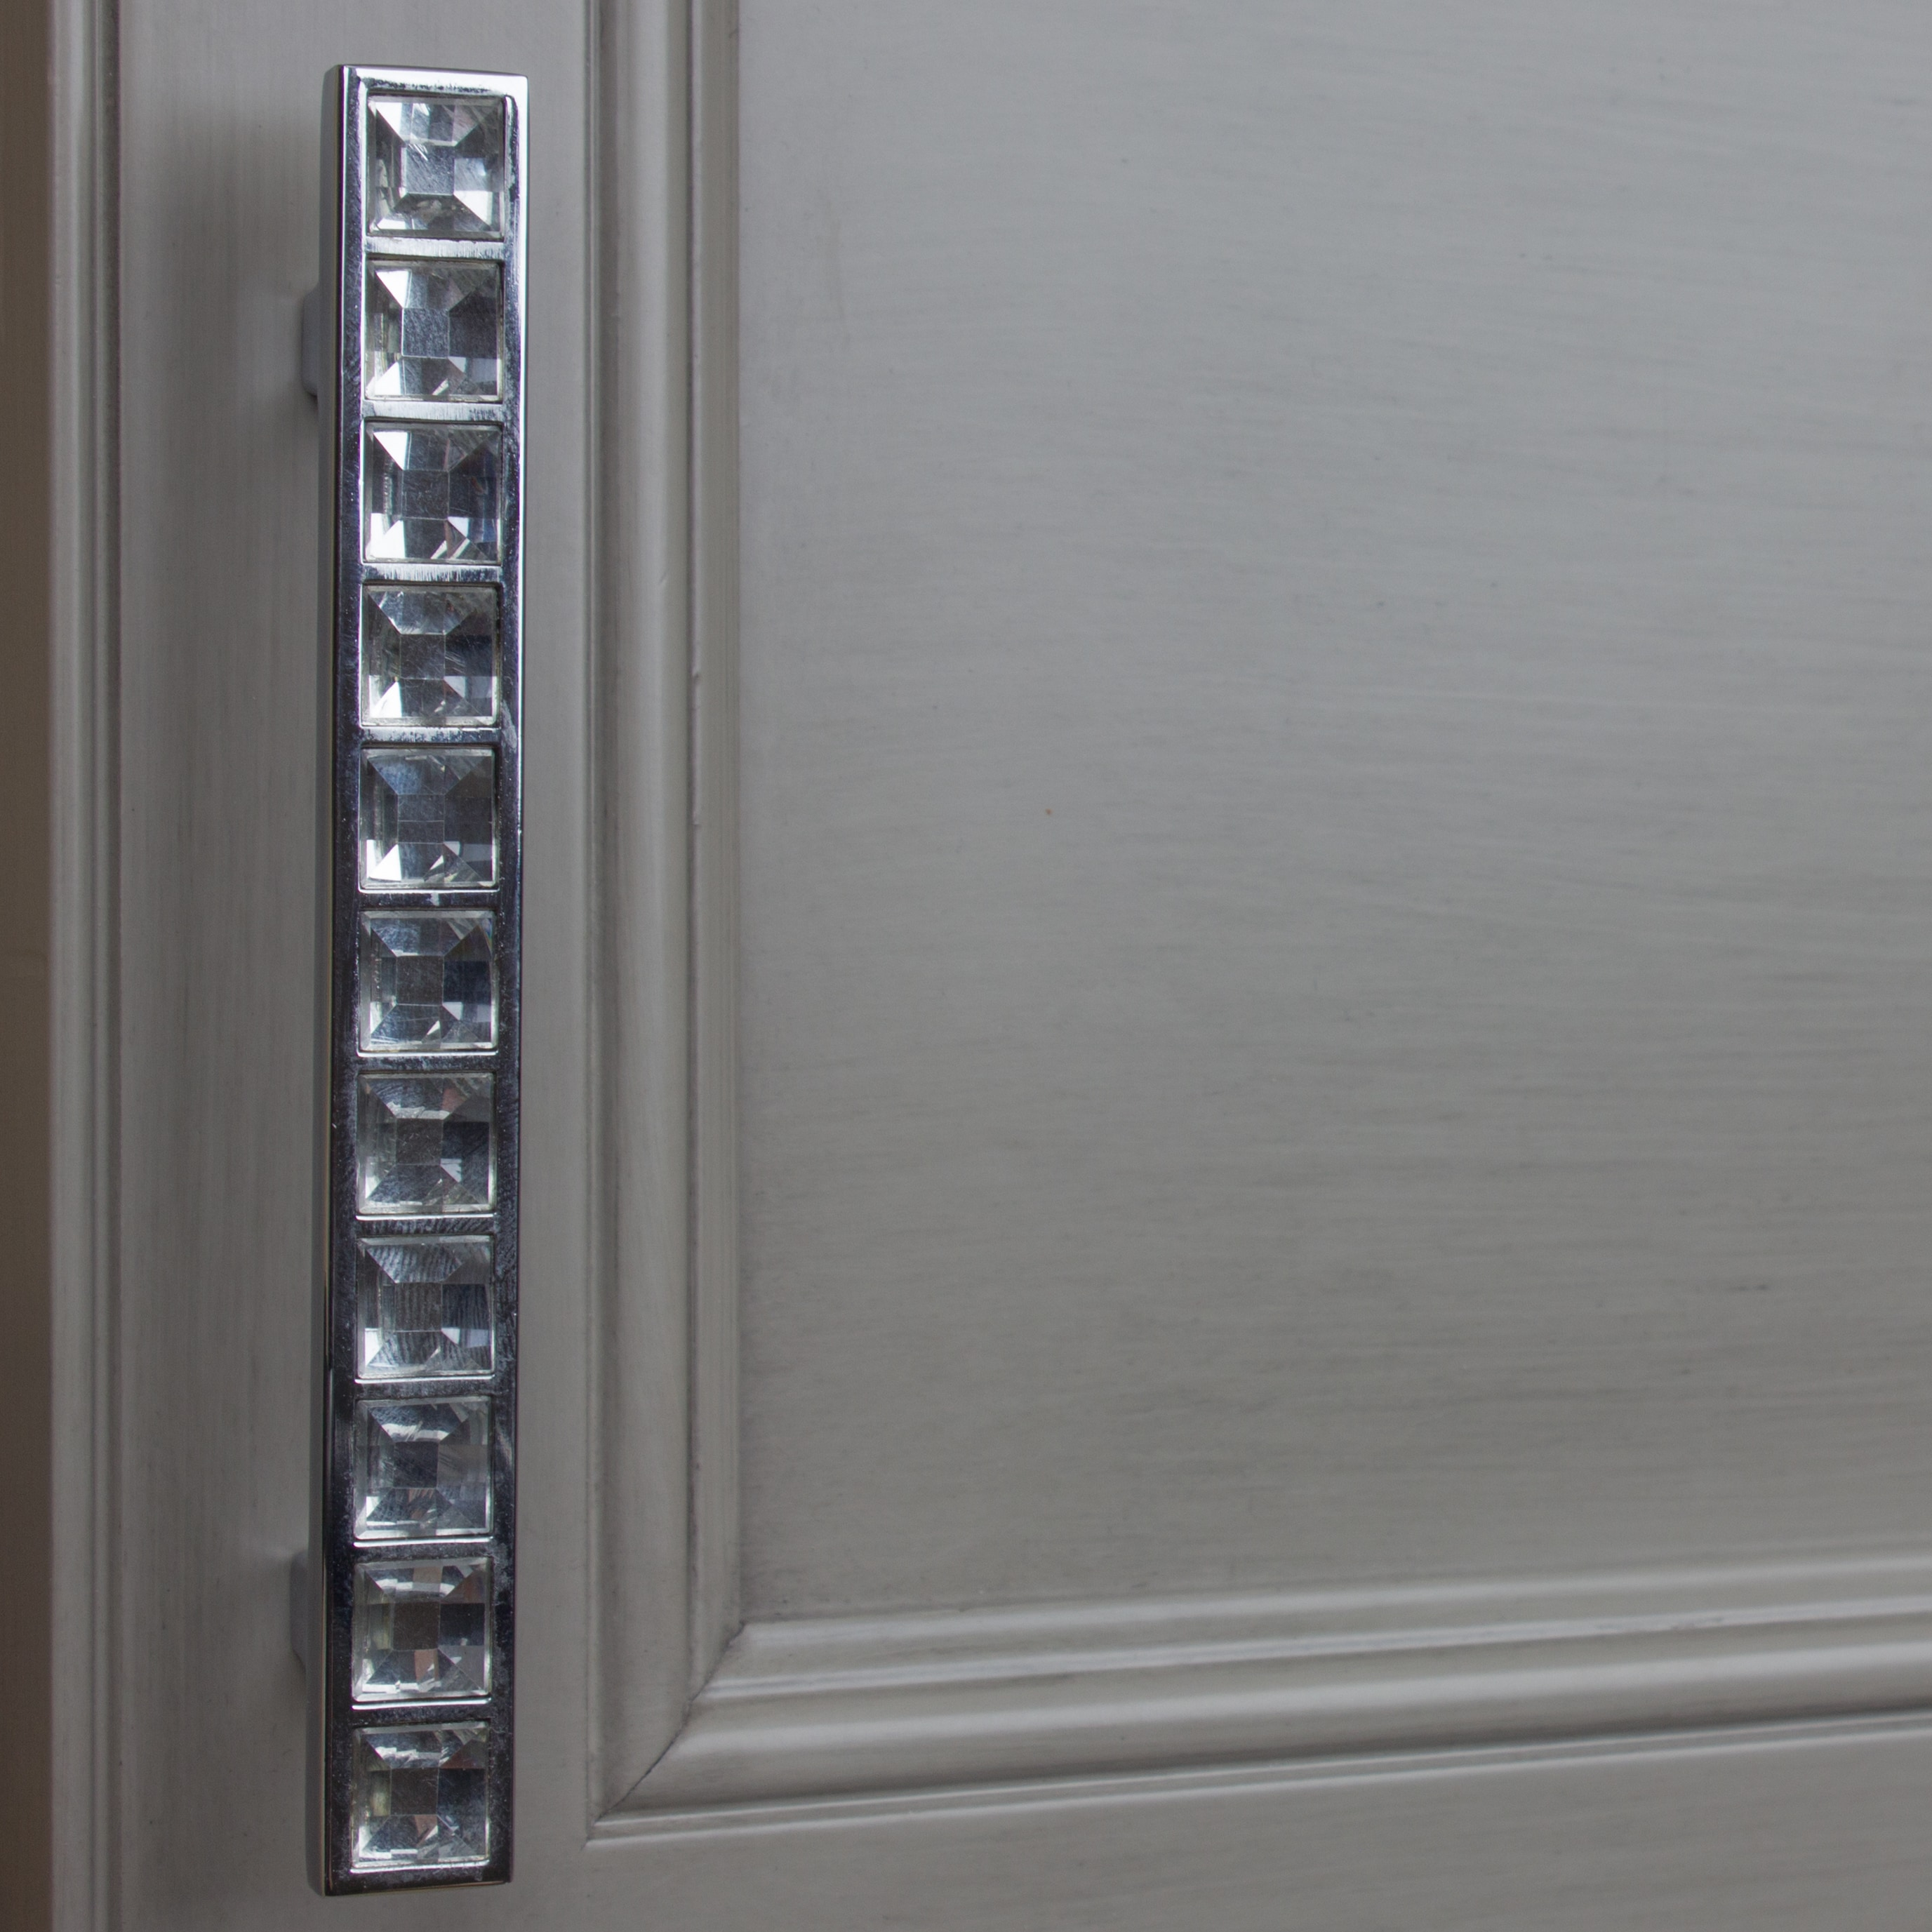 home nickel glass depot handles amazon of stunning knobs brushed pulls crystal luxury hardware small cheap and cabinet vanity canada marvelous kitchen